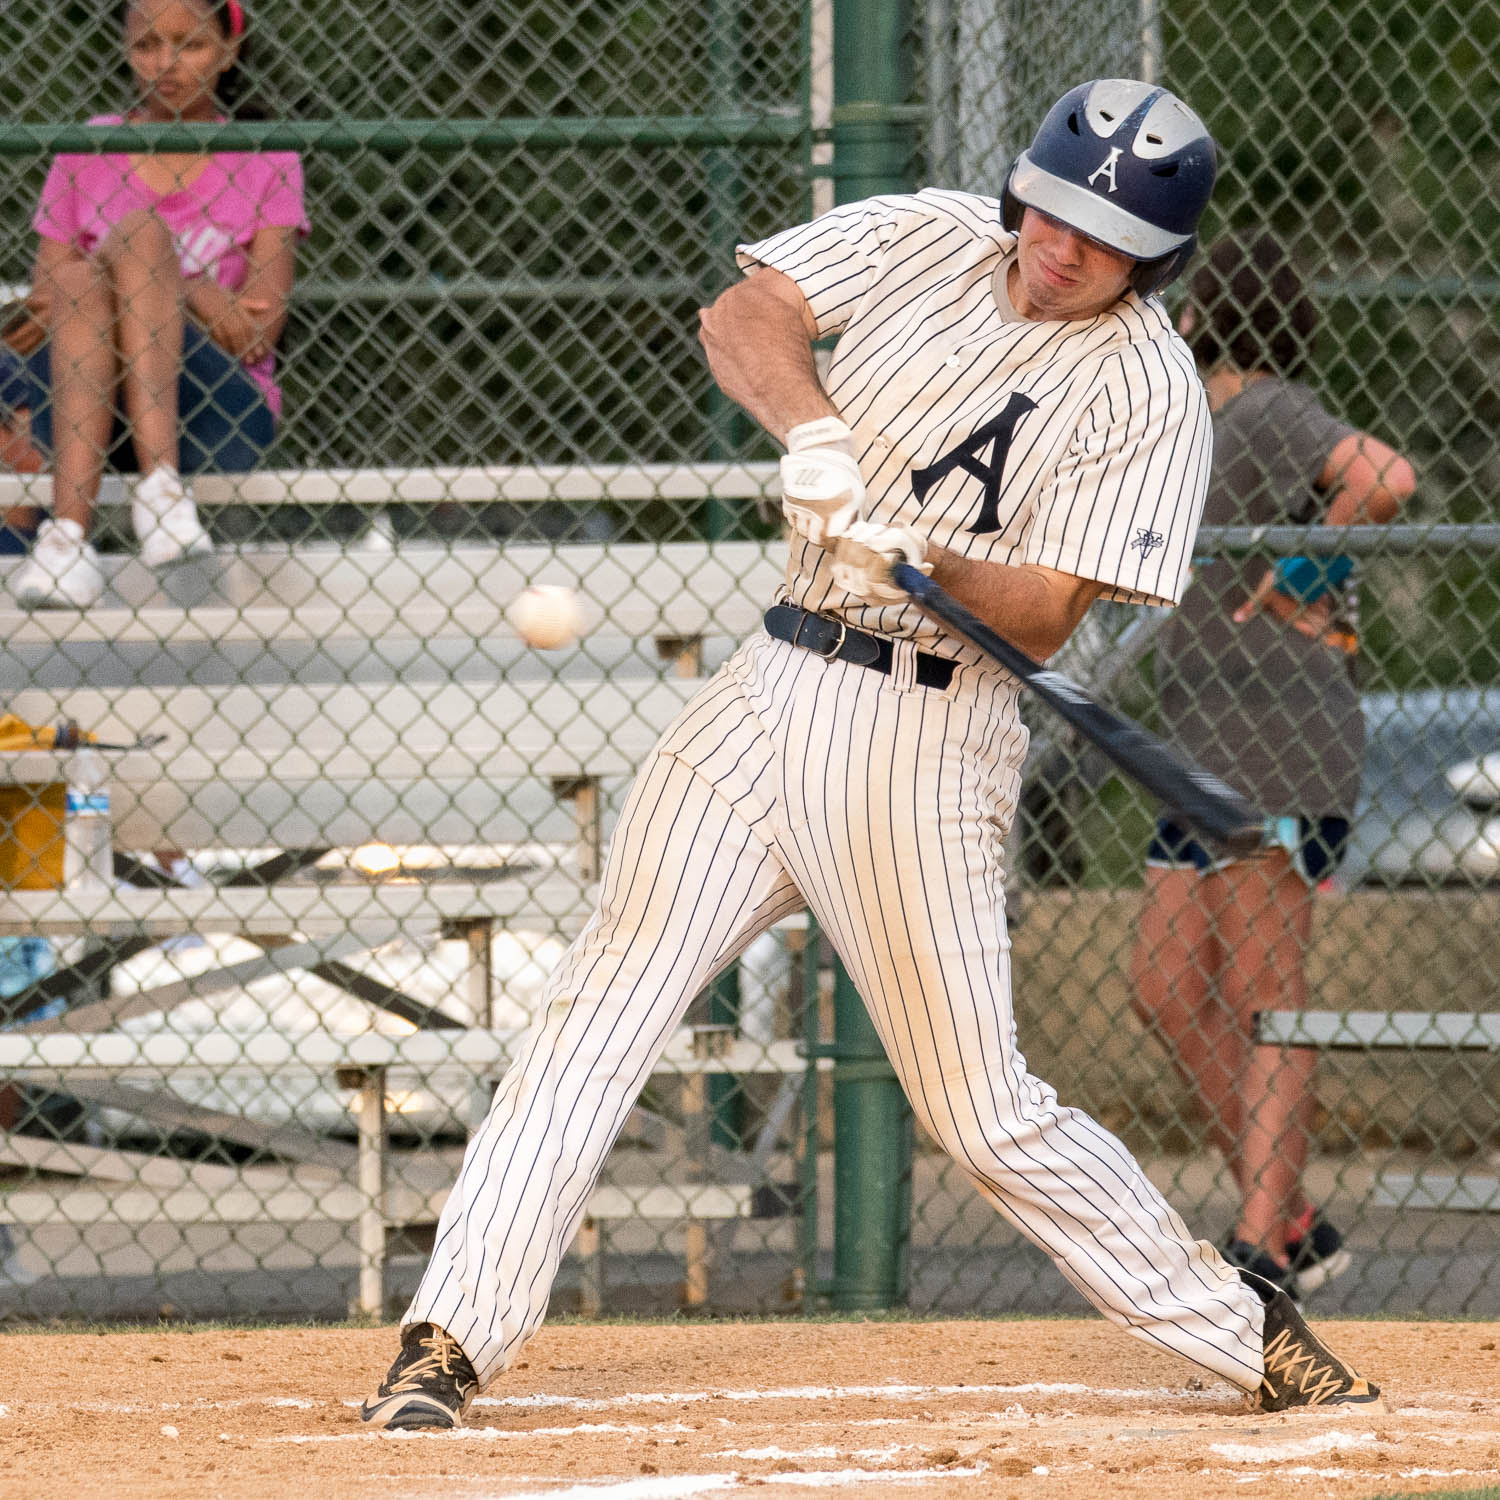 Gaithersburg Giants vs Alexandria Aces, 20170717-2182.jpg